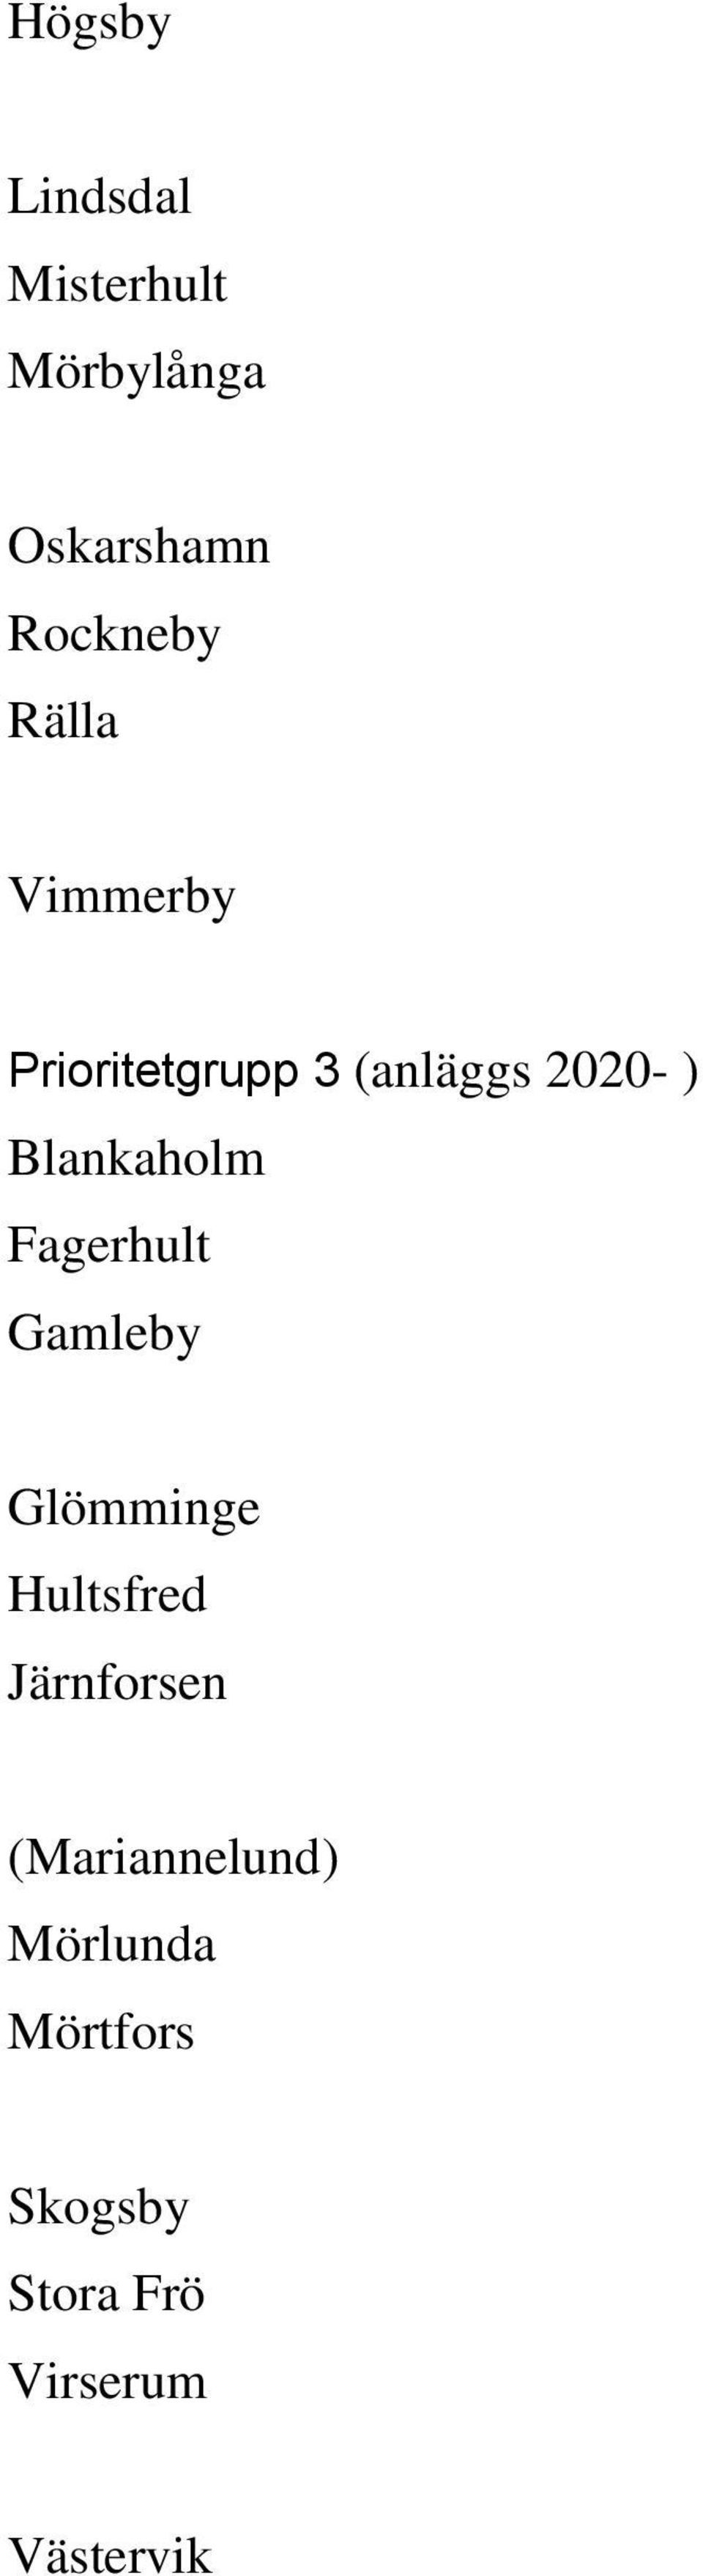 Blankaholm Fagerhult Gamleby Glömminge Hultsfred